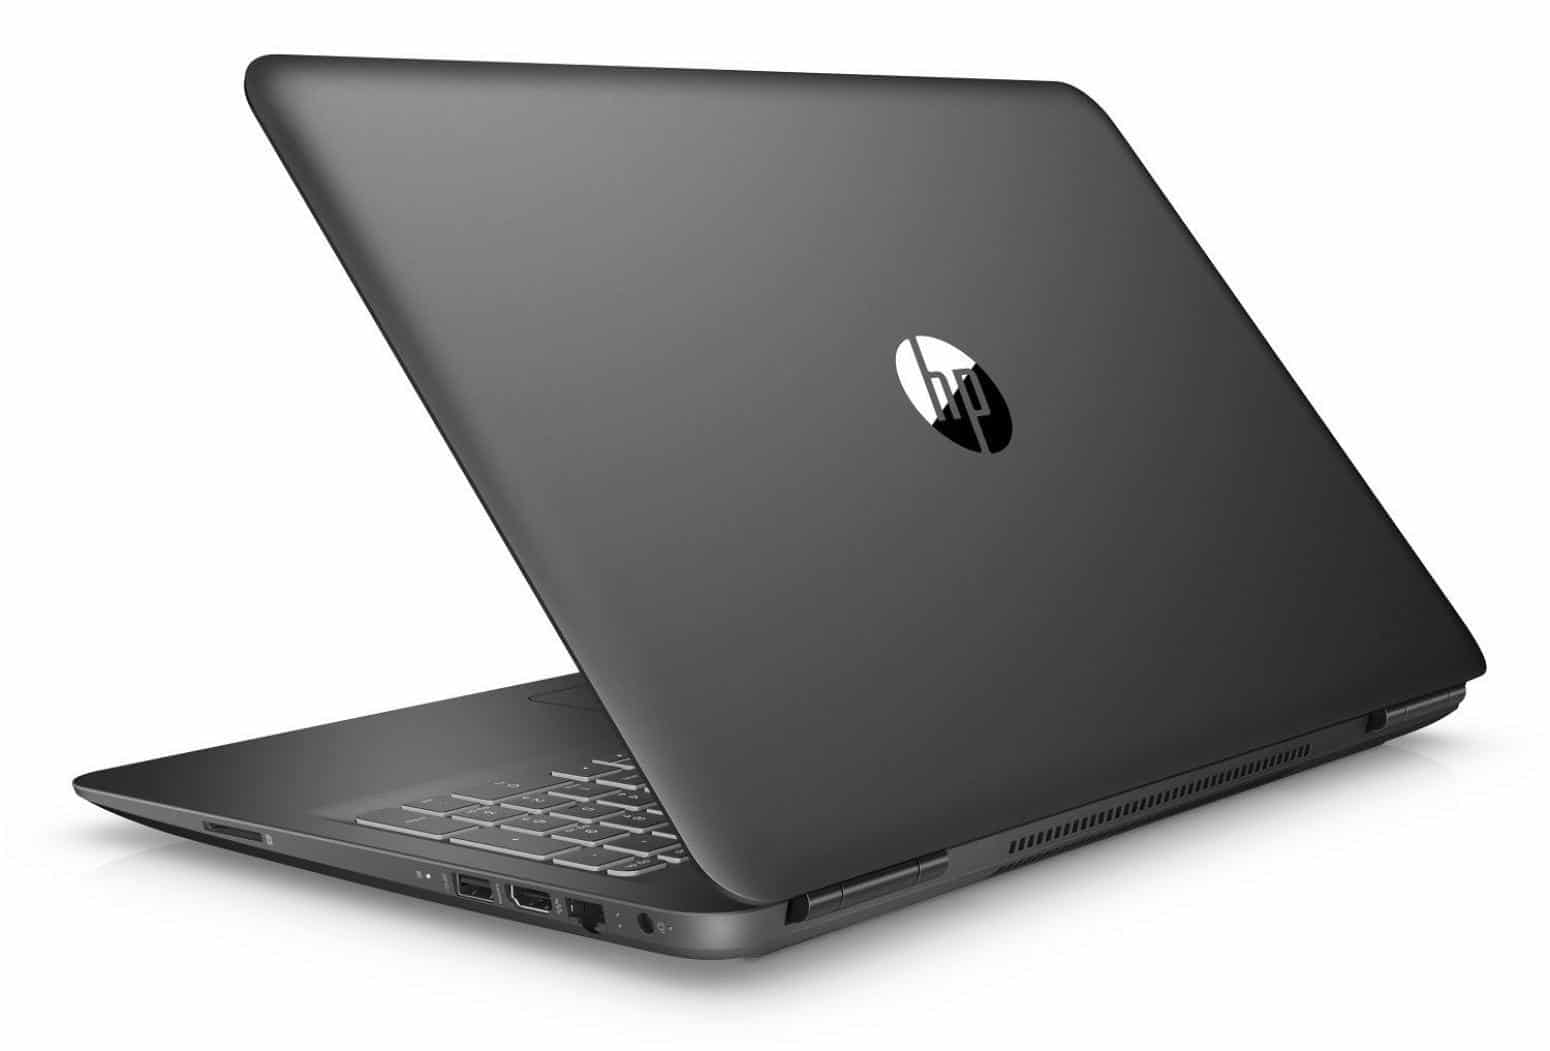 HP Pavilion 15-bc312nf, PC 15 pouces Full SSD i5 Kaby GTX 950M (669€)